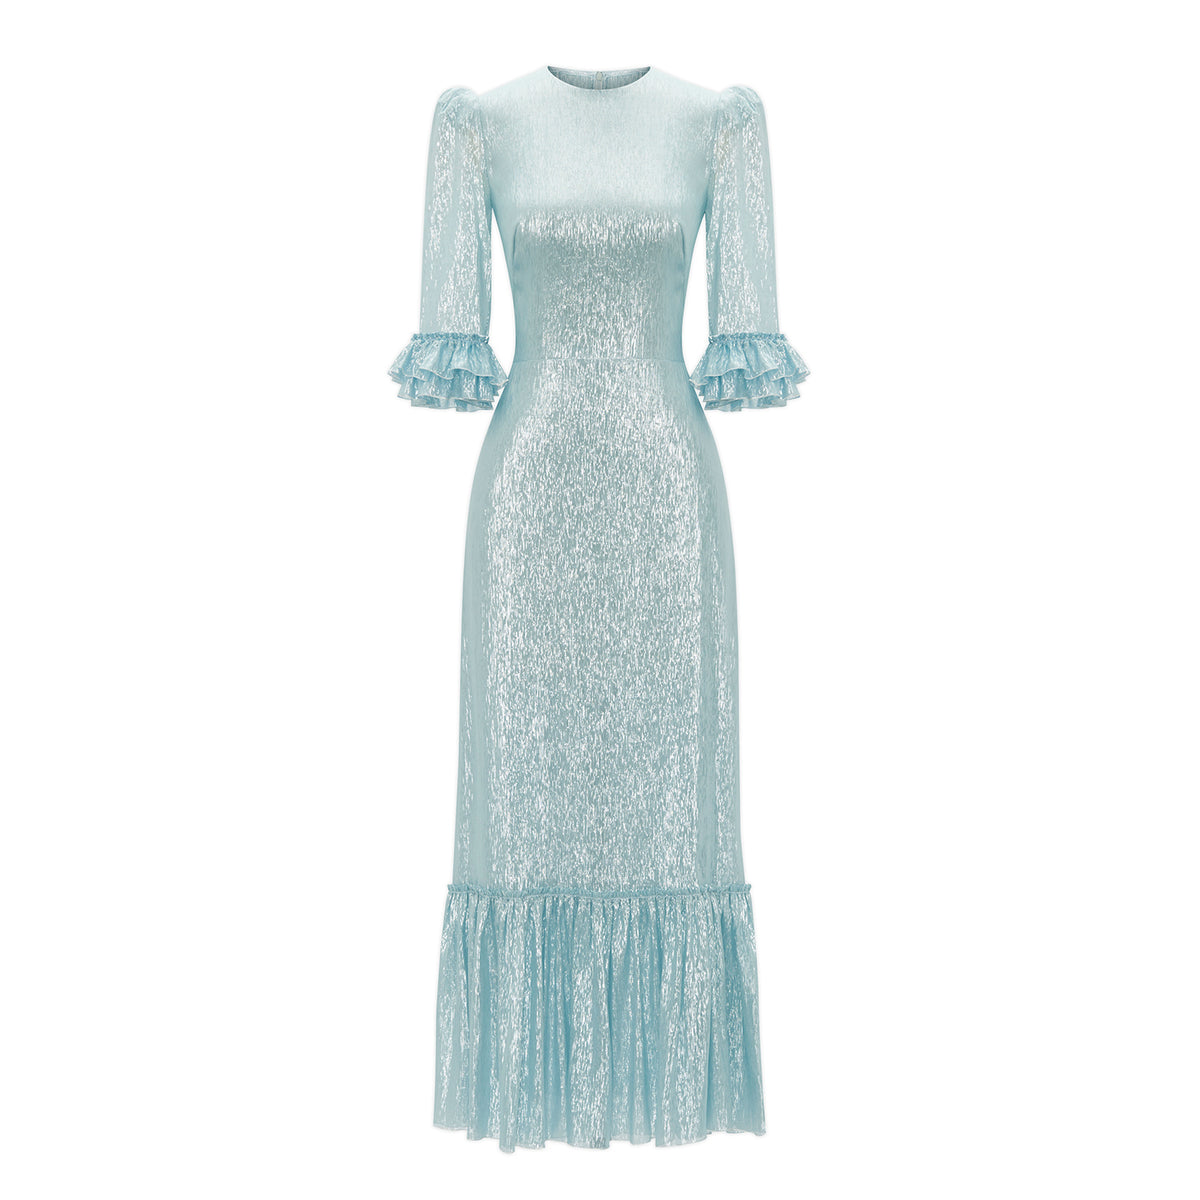 PALE BLUE METALLIC SILK FESTIVAL DRESS